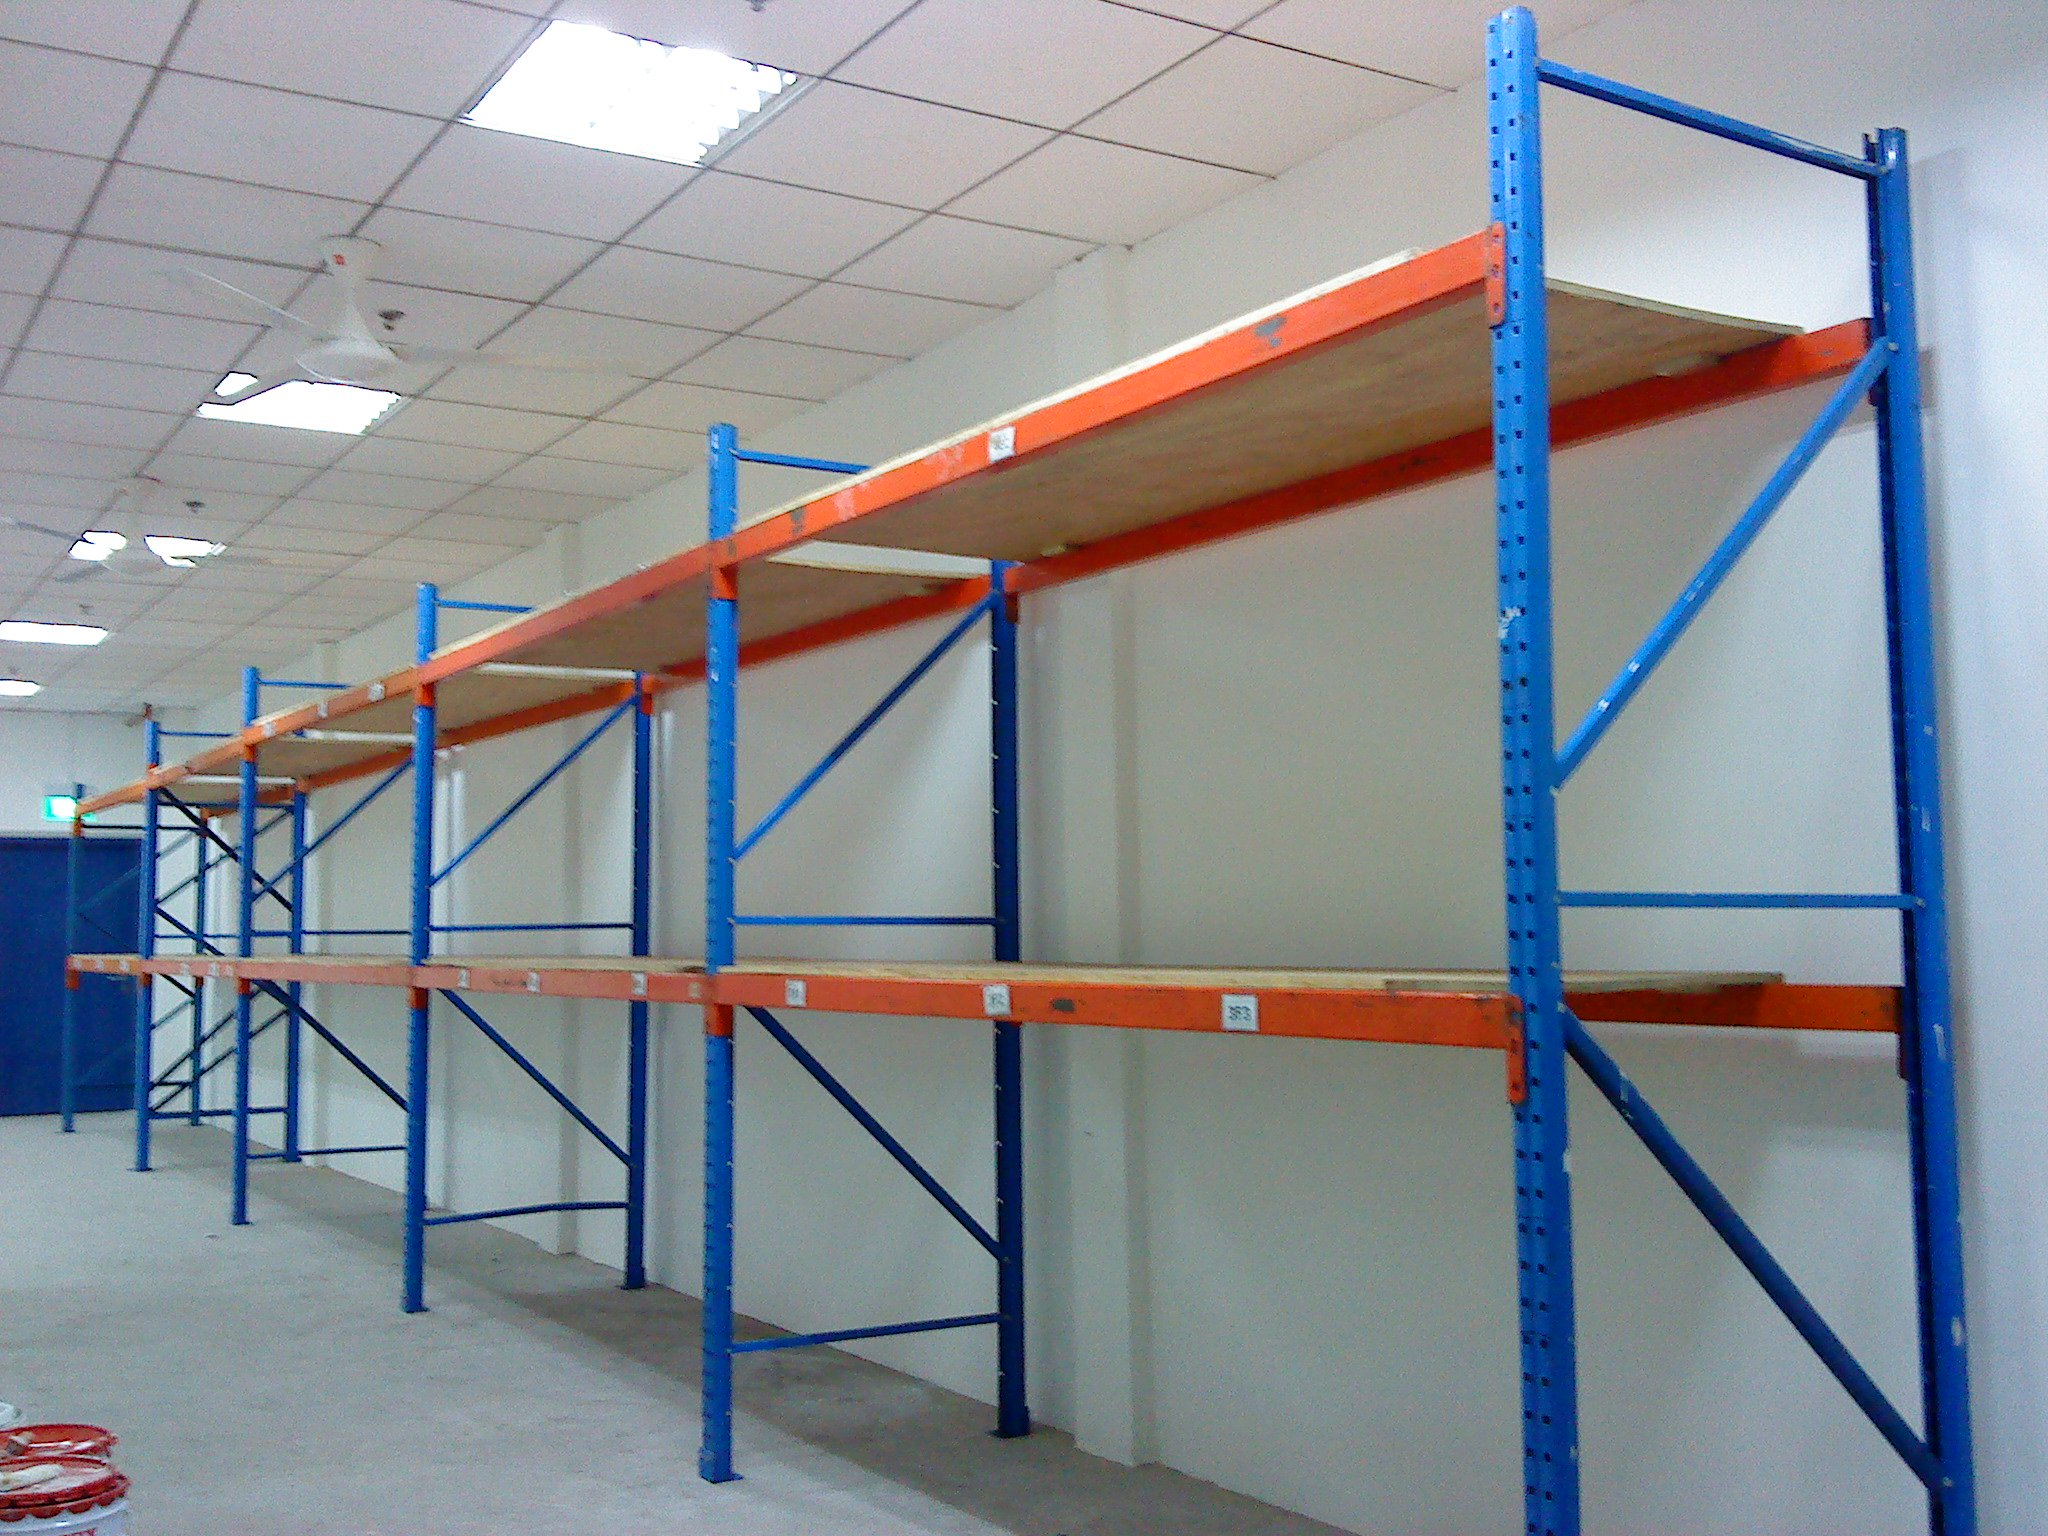 FOR SALE: Storage Racks, Display Racks, , Stocks to clear from 20cts